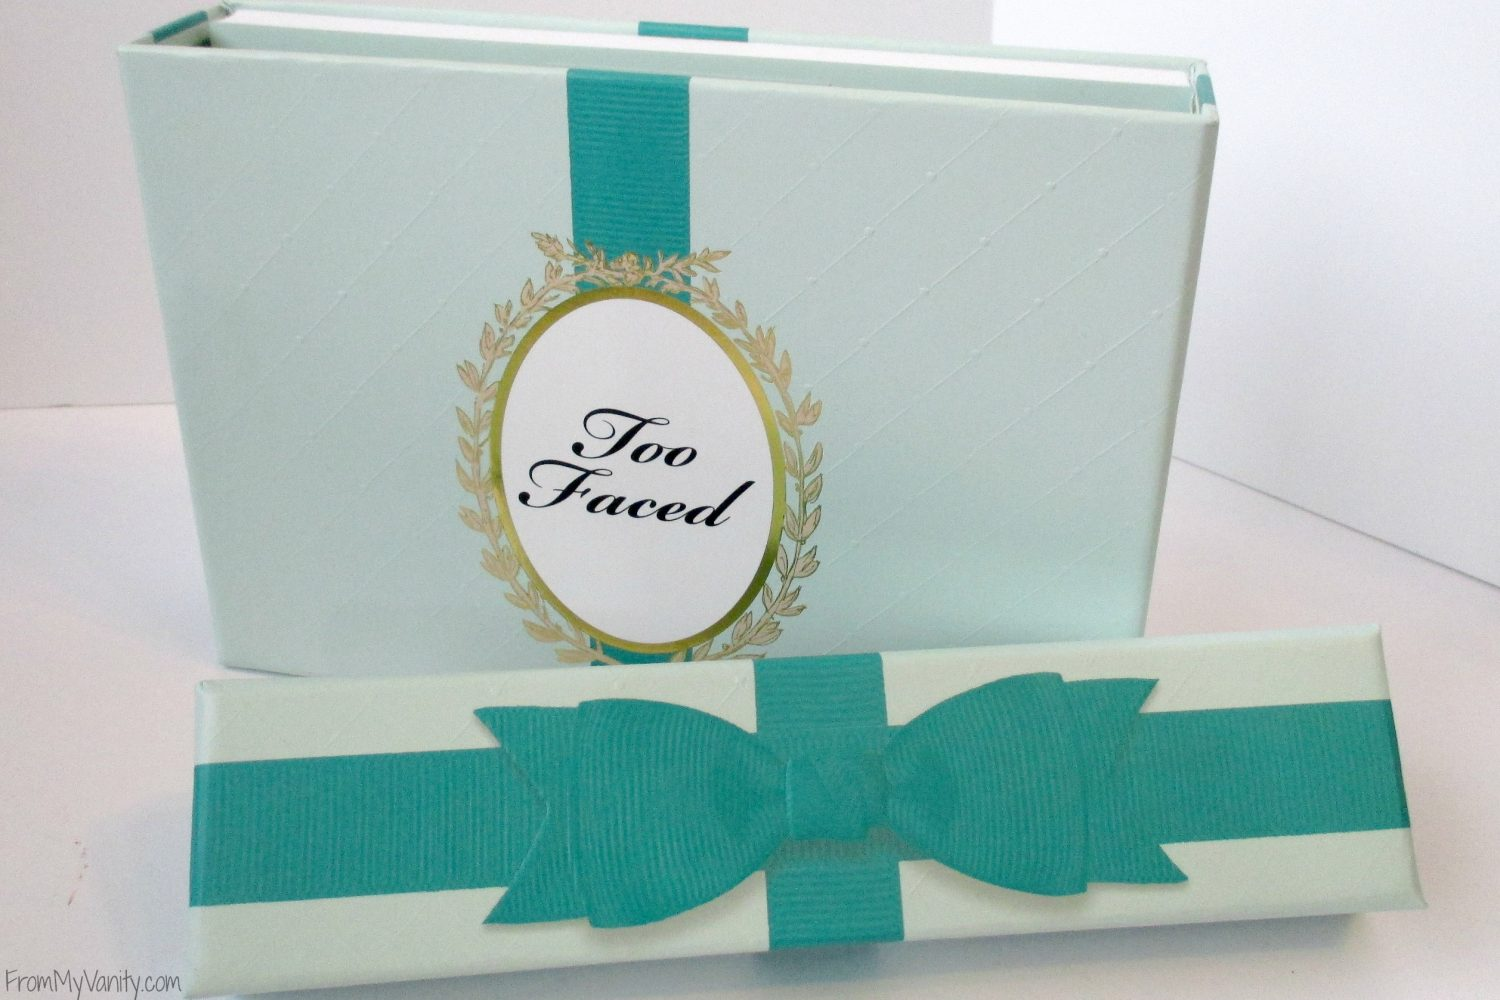 Too Faced La Petite Maison // Holiday Set // Review & Swatches // Bow on Box // #UltaBeauty #TooFaced FromMyVanity.com